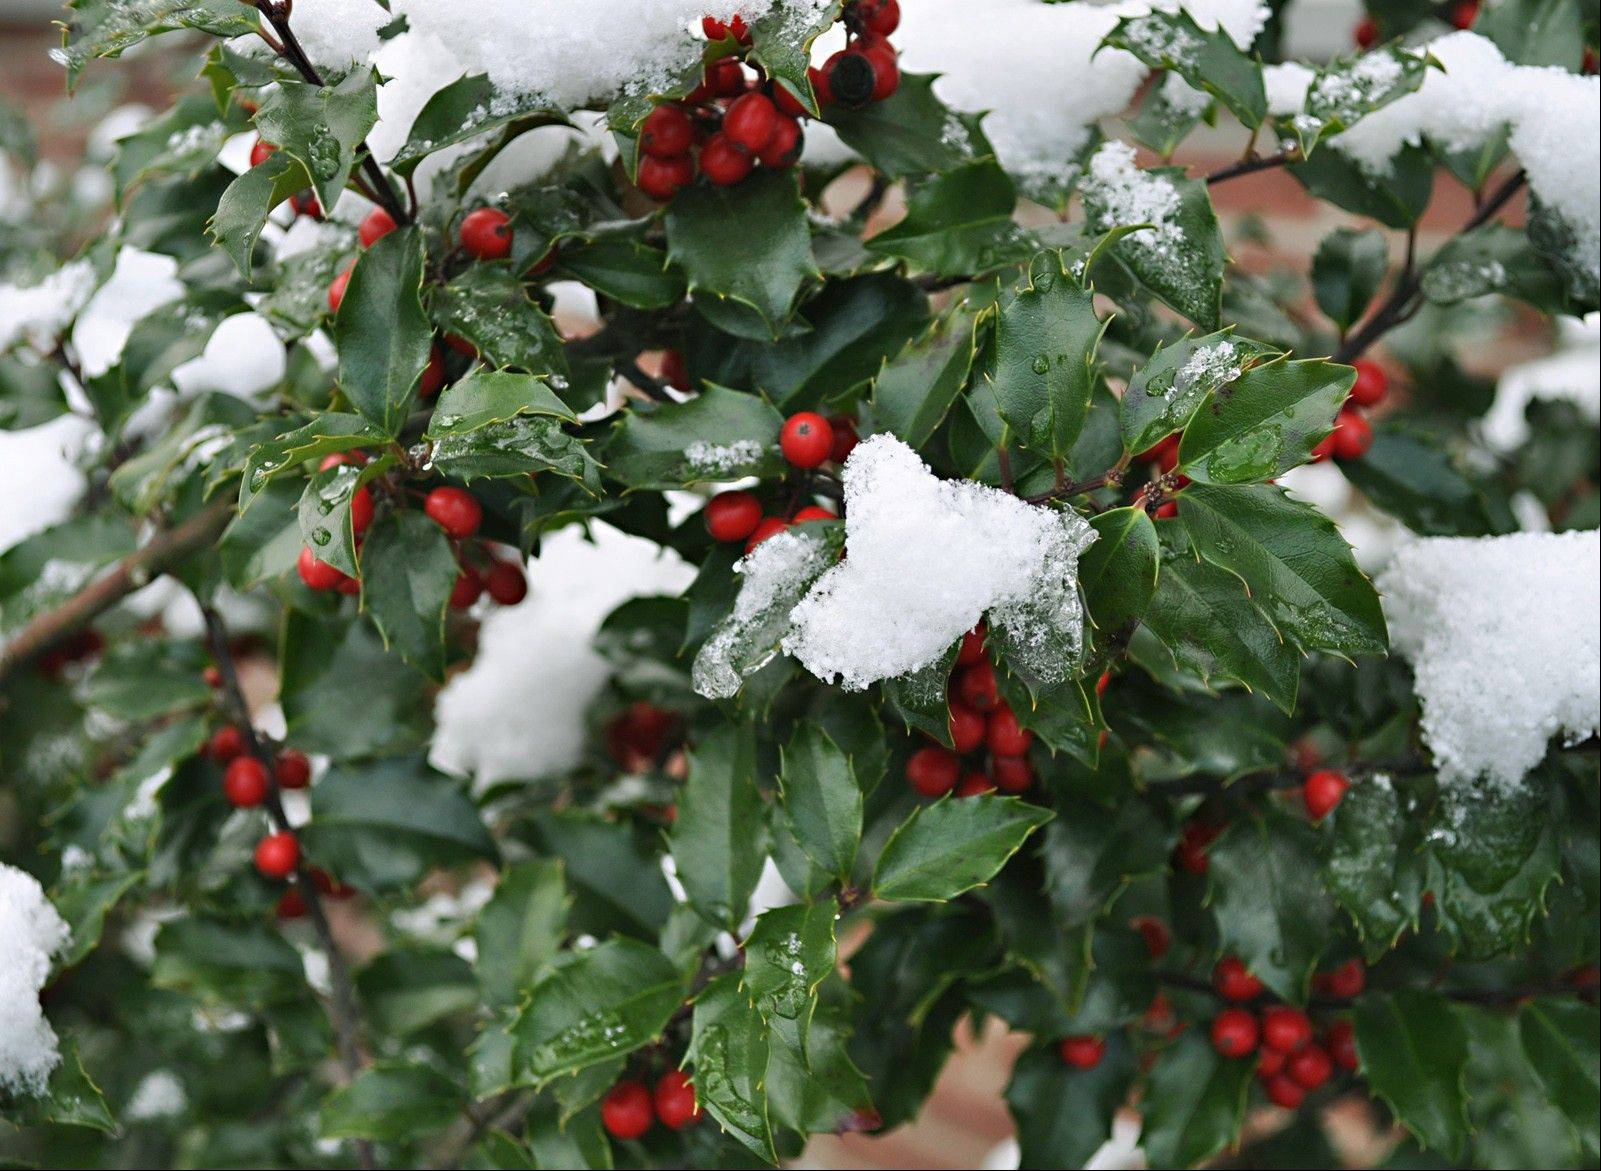 Unlike many plants, holly�s pollen is borne on flowers that are strictly male, while its eggs are contained in flowers that are strictly female. So you need trees of both sexes if you want to see any berries.